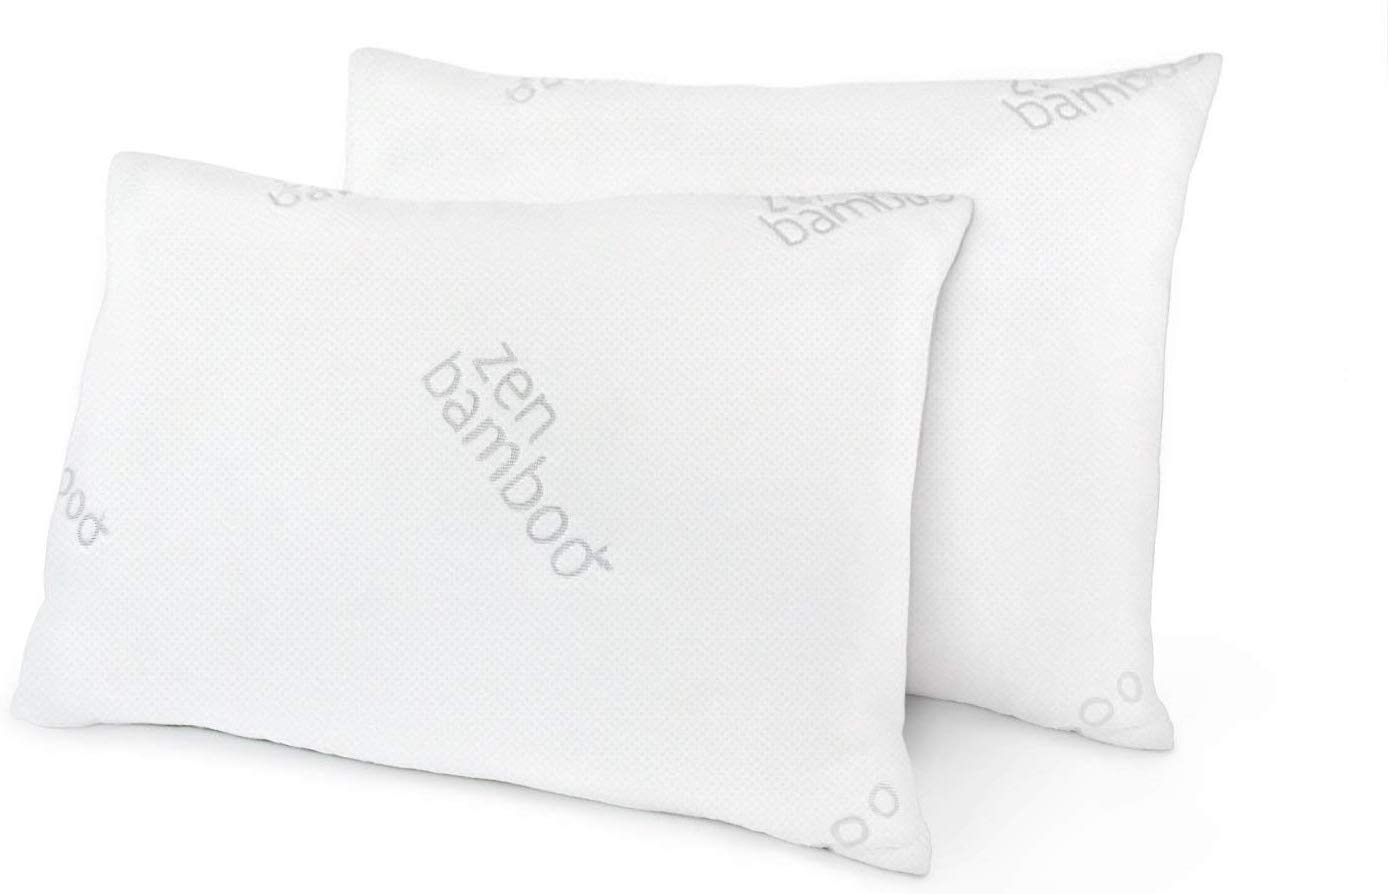 Zen Bamboo best cooling pillow review by www.dailysleep.org